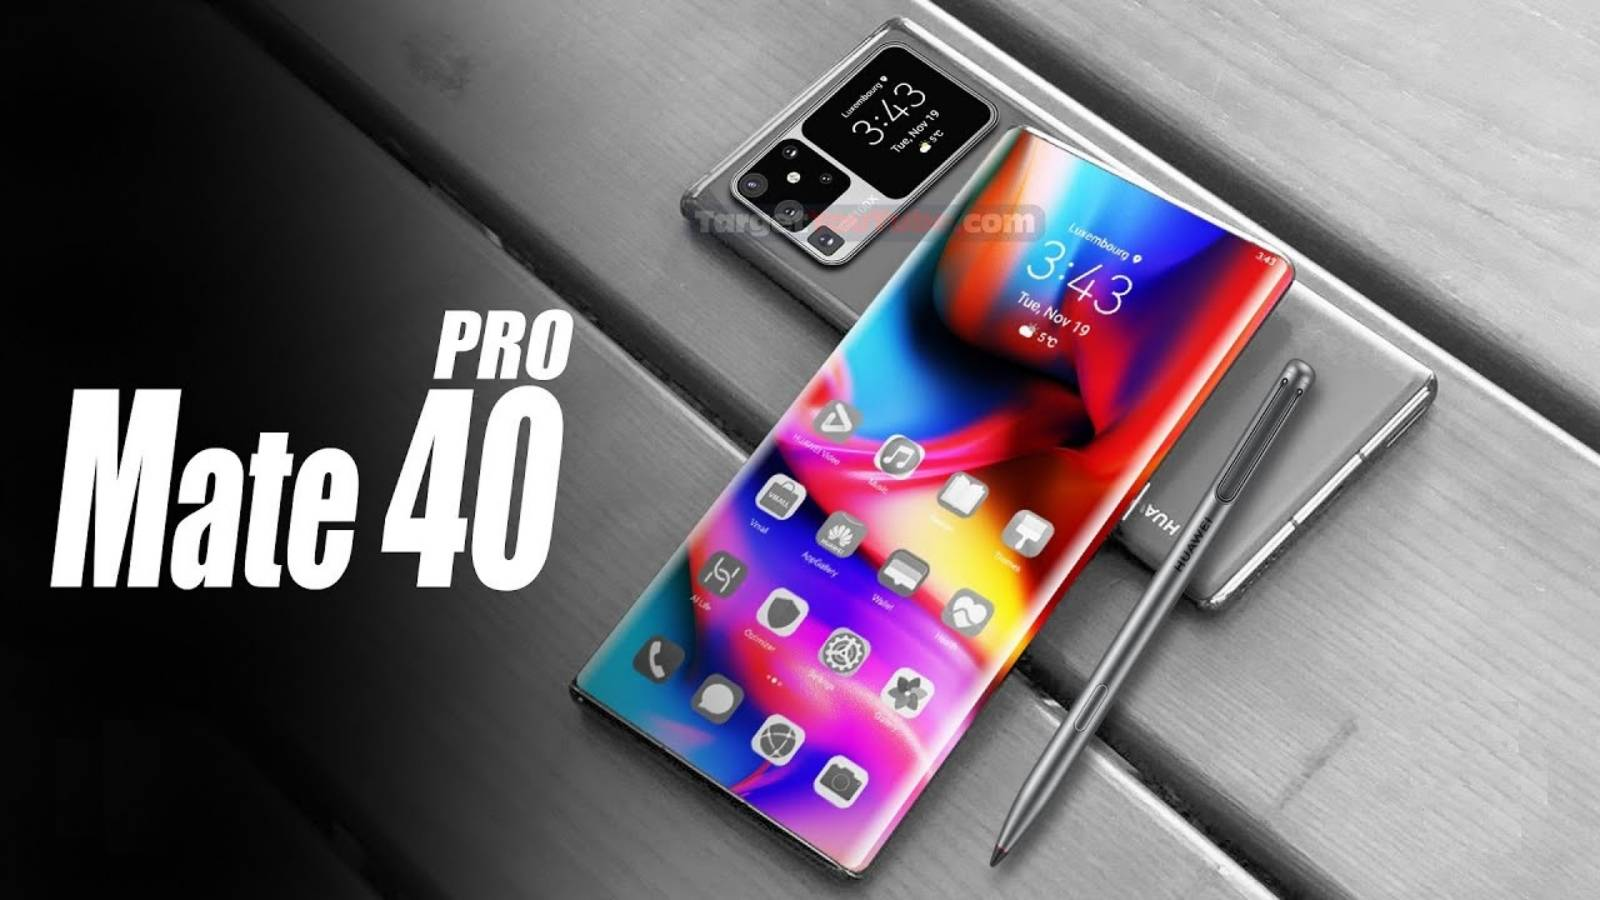 Huawei MATE 40 Pro supercharge